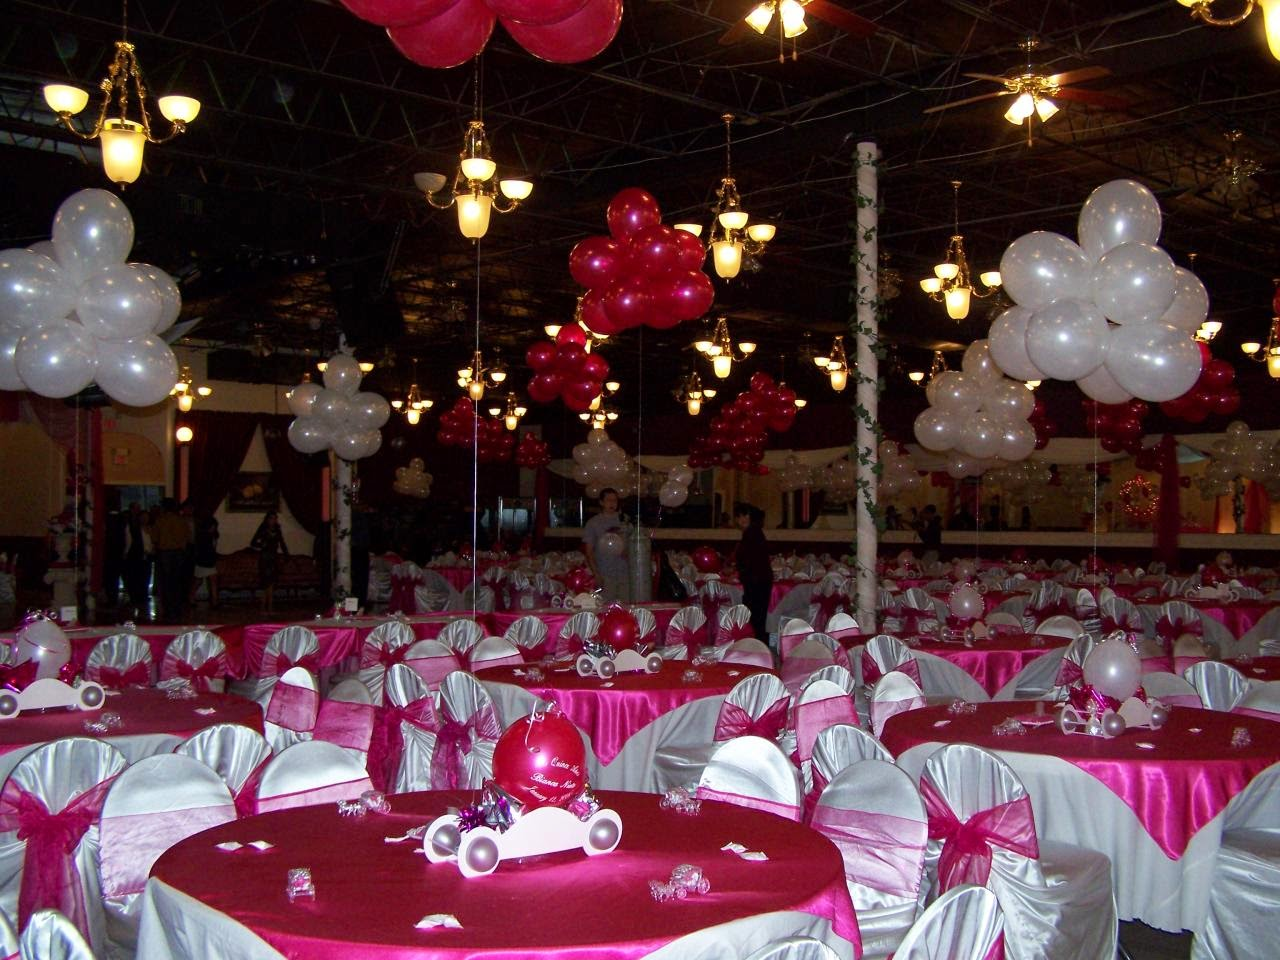 15co 5002 san bernardo laredo tx 78041 great ideas to for Balloon decoration ideas for quinceaneras